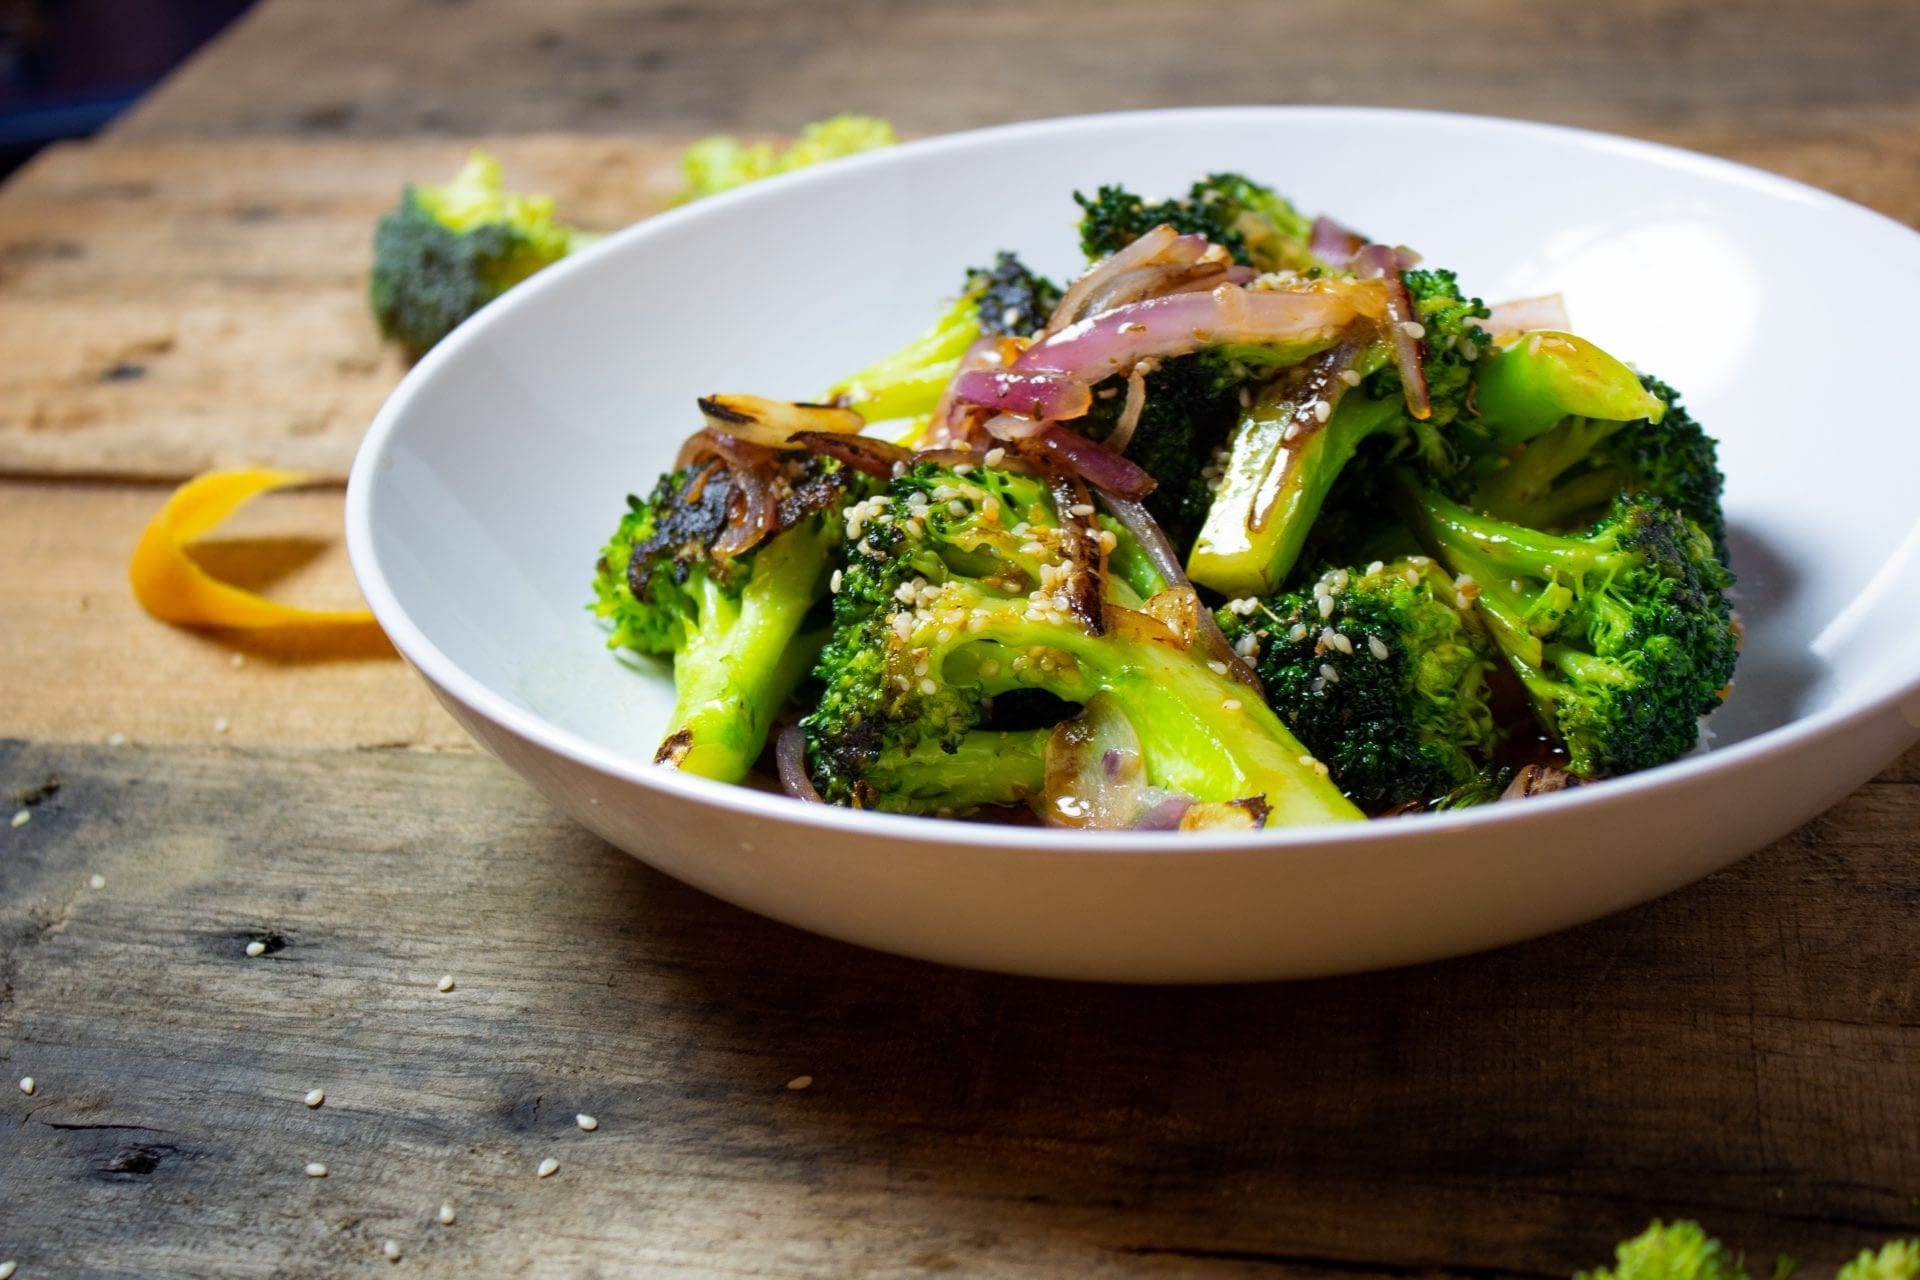 Pan-Roasted Broccoli with Tangy Grapefruit Vinaigrette